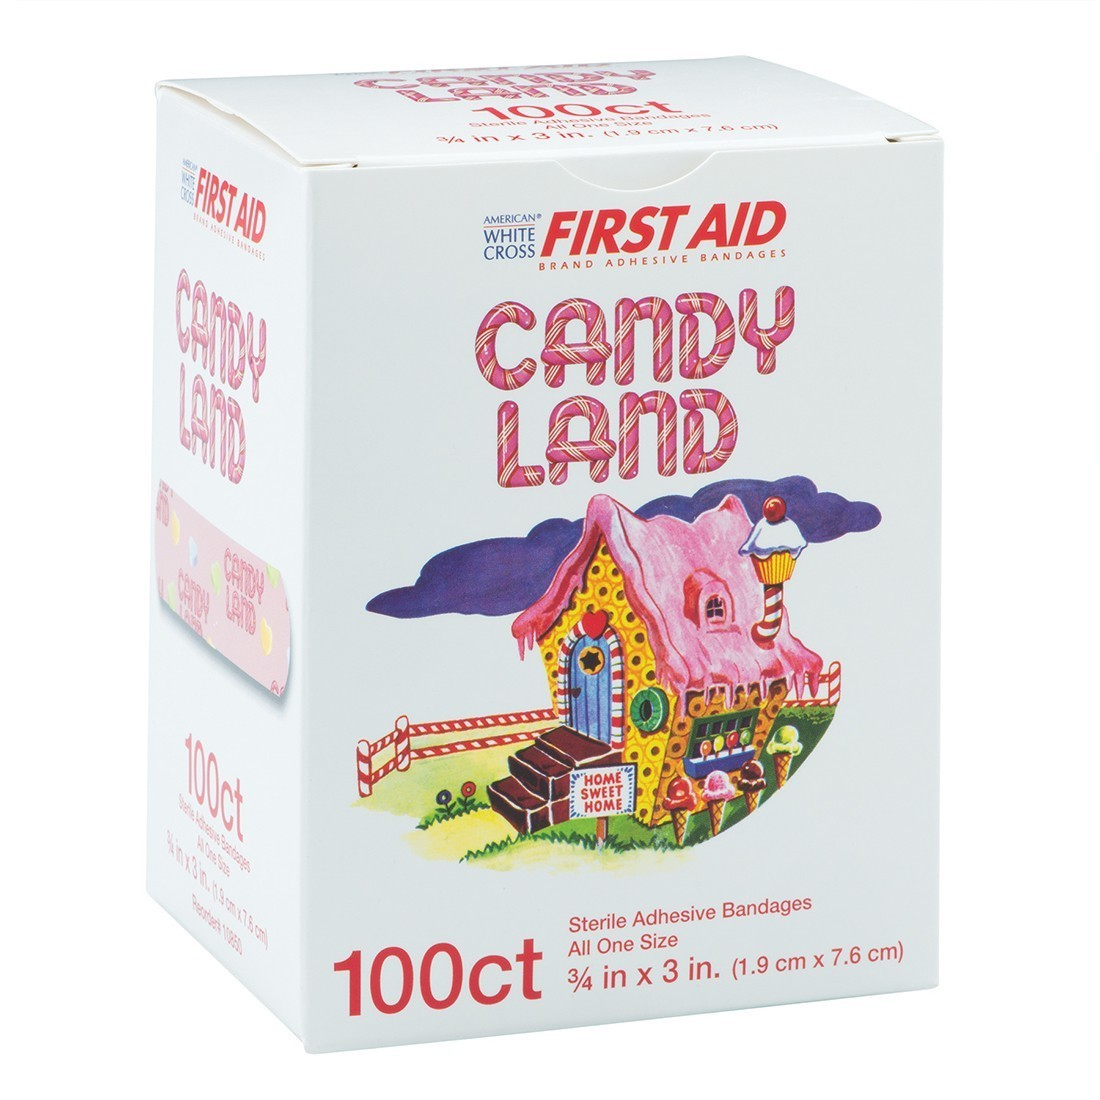 First Aid Candy Land Bandages [image]